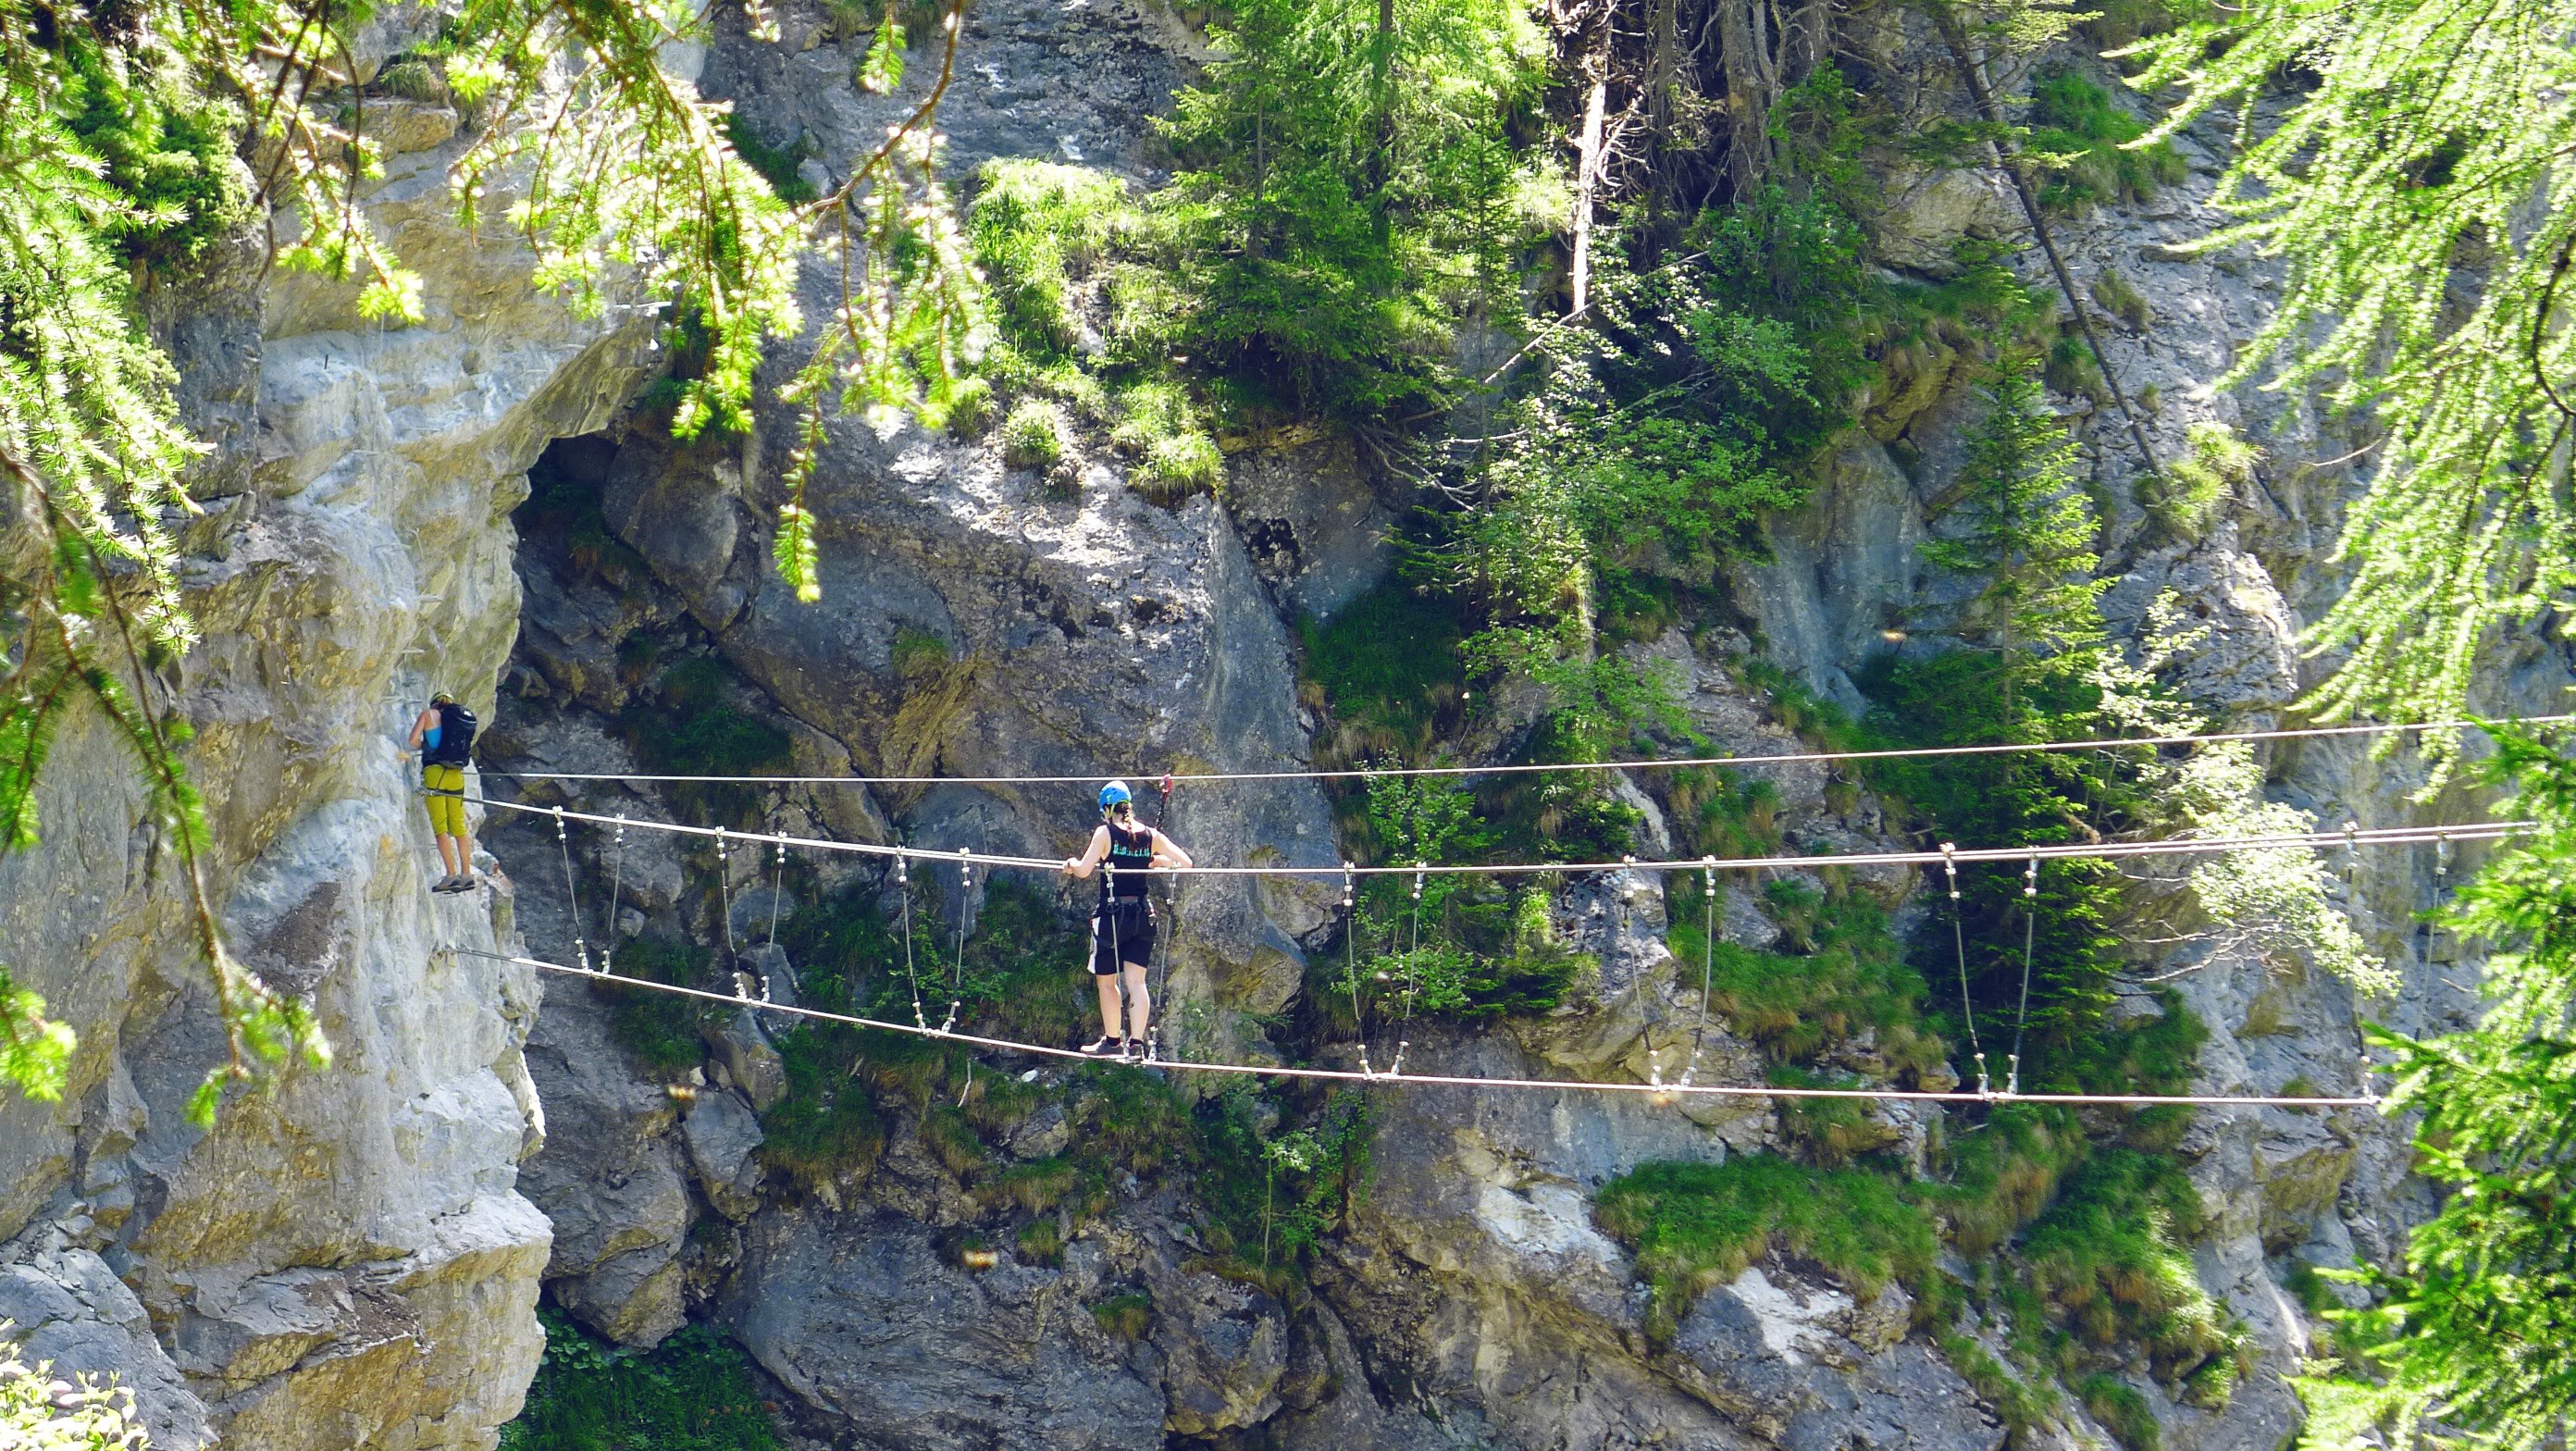 This via ferrata crosses the deep gorges of Dranse from the Mauvoisin dam. The first part (Saxifrage) is accessible to everyone.  The second part called Tichodrome (equivalent to the Eurasian Crag Martin), is suitable for athletic climbers.